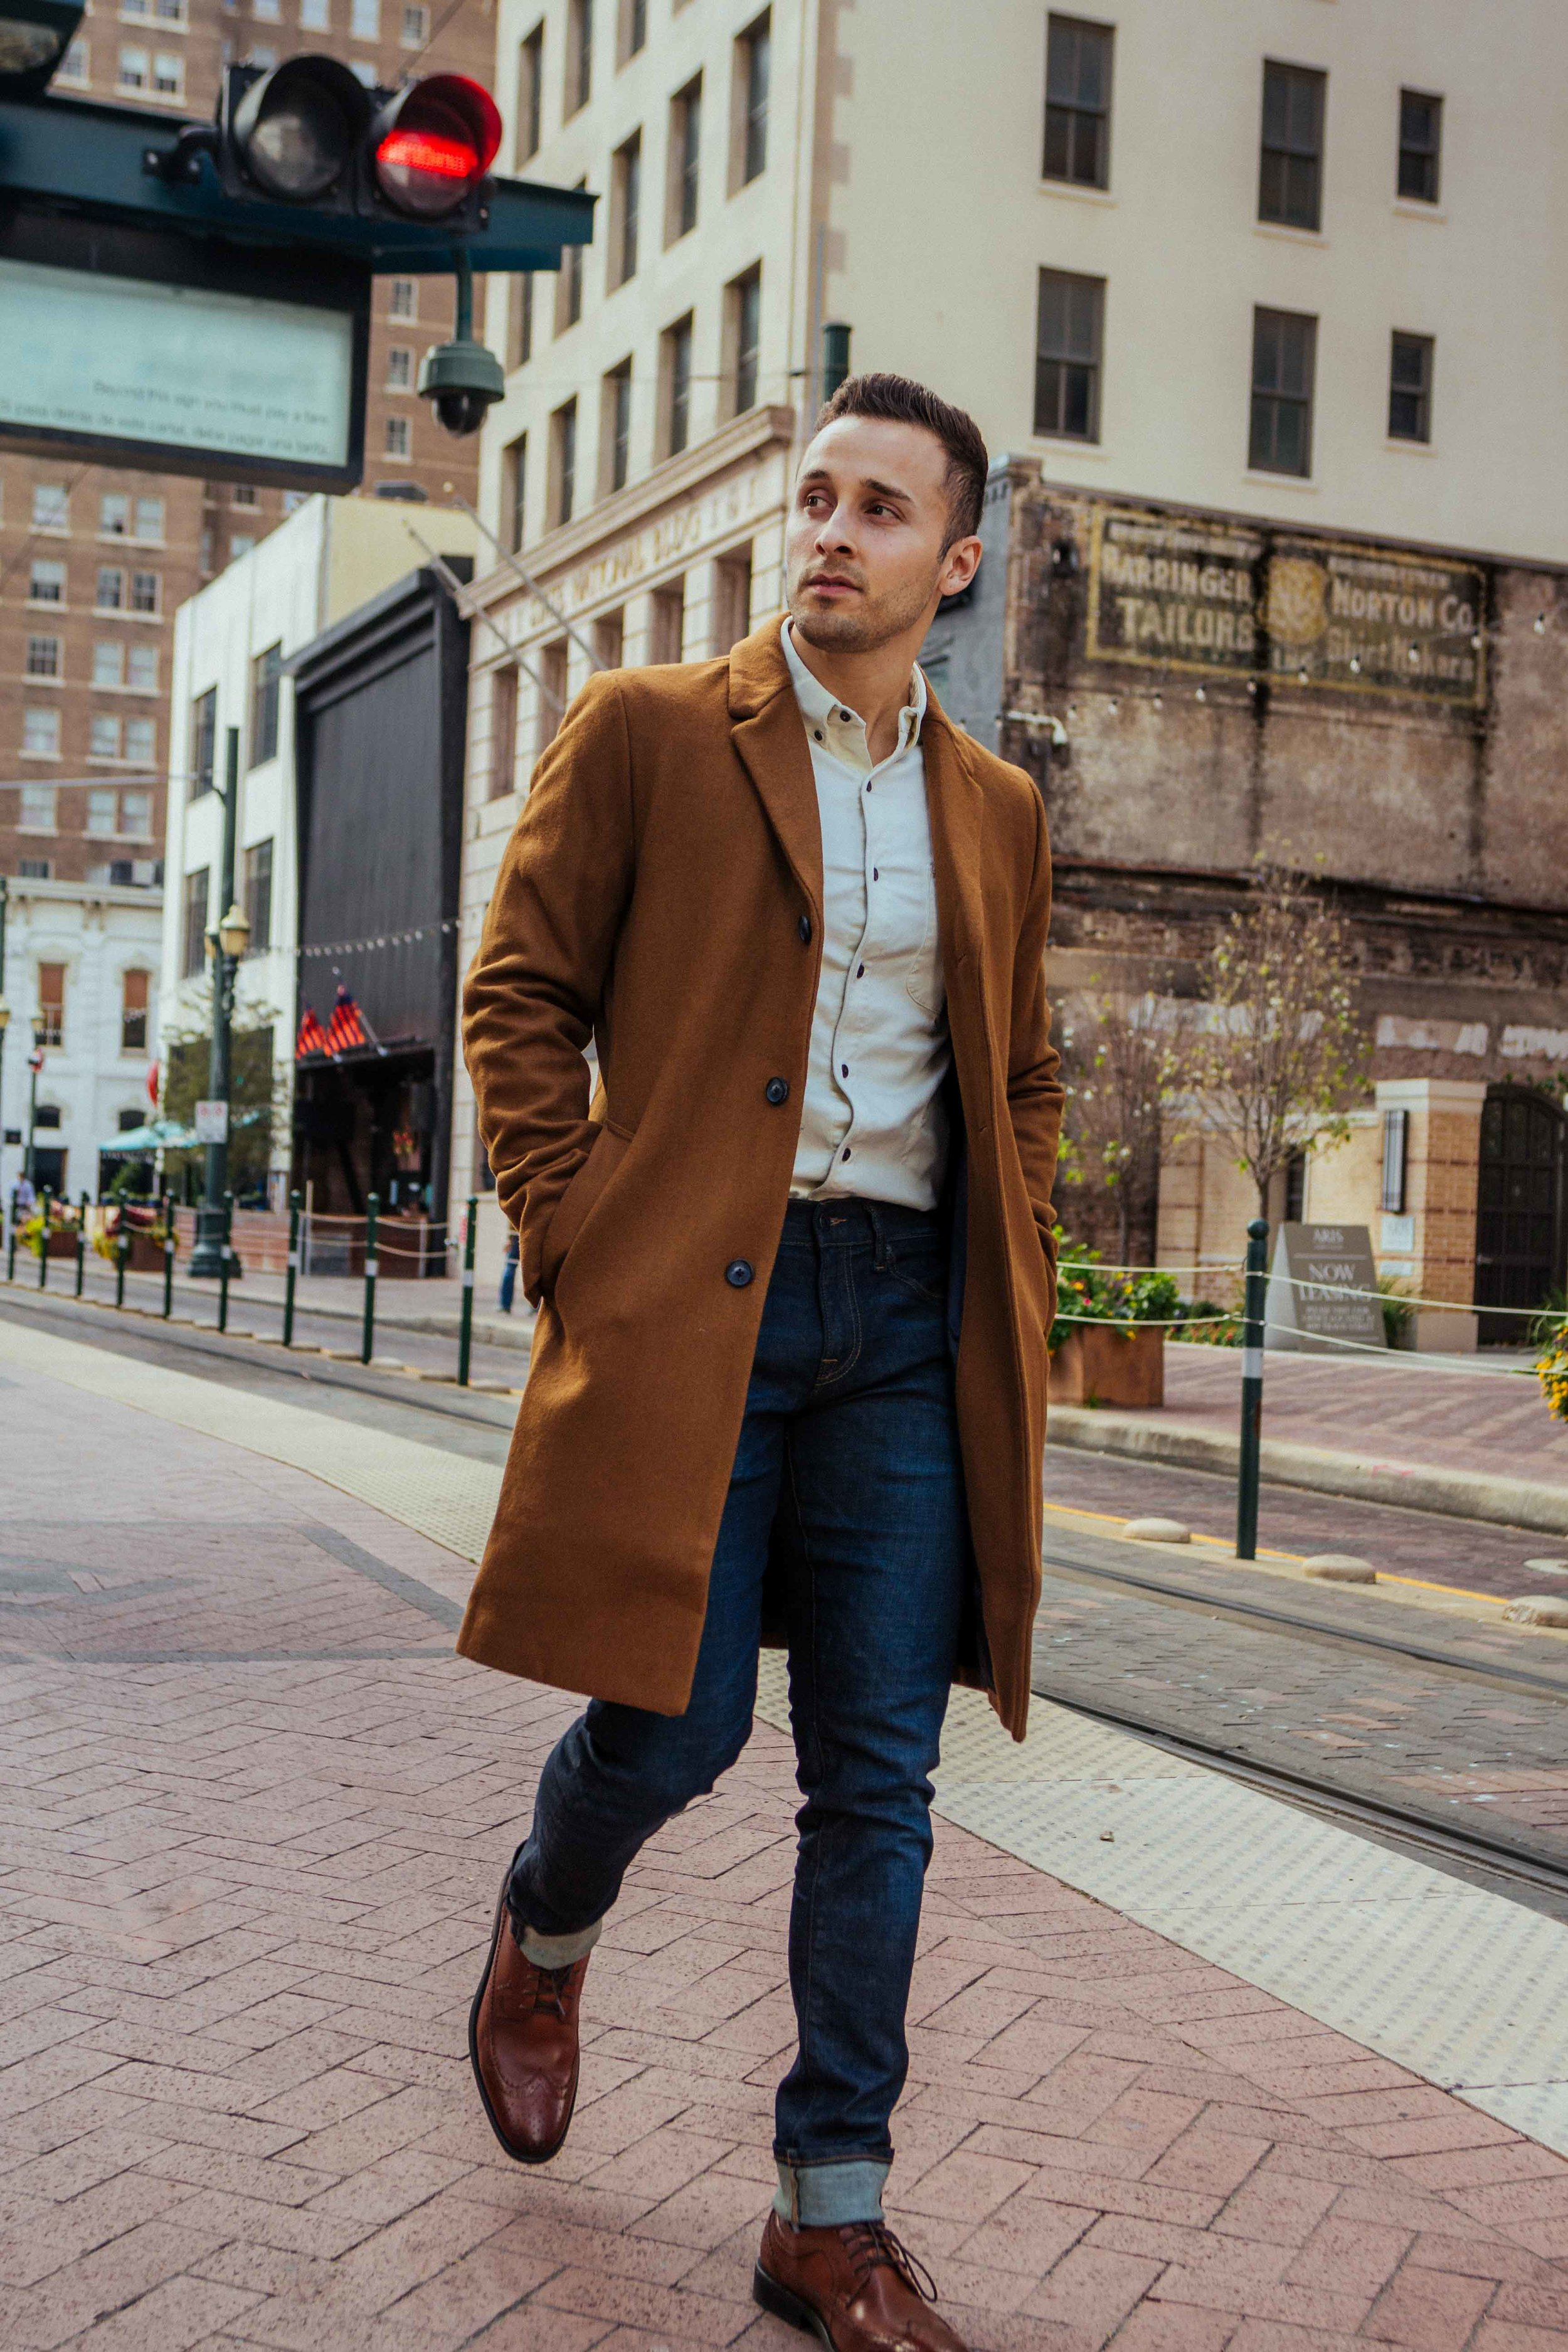 My Lucky Holiday - One of the greatest season of the year deserves the right attire, and what better way to celebrate with family and friends while feeling comfortable and stylish with Lucky Brand's winter essentials.LIFESTYLE